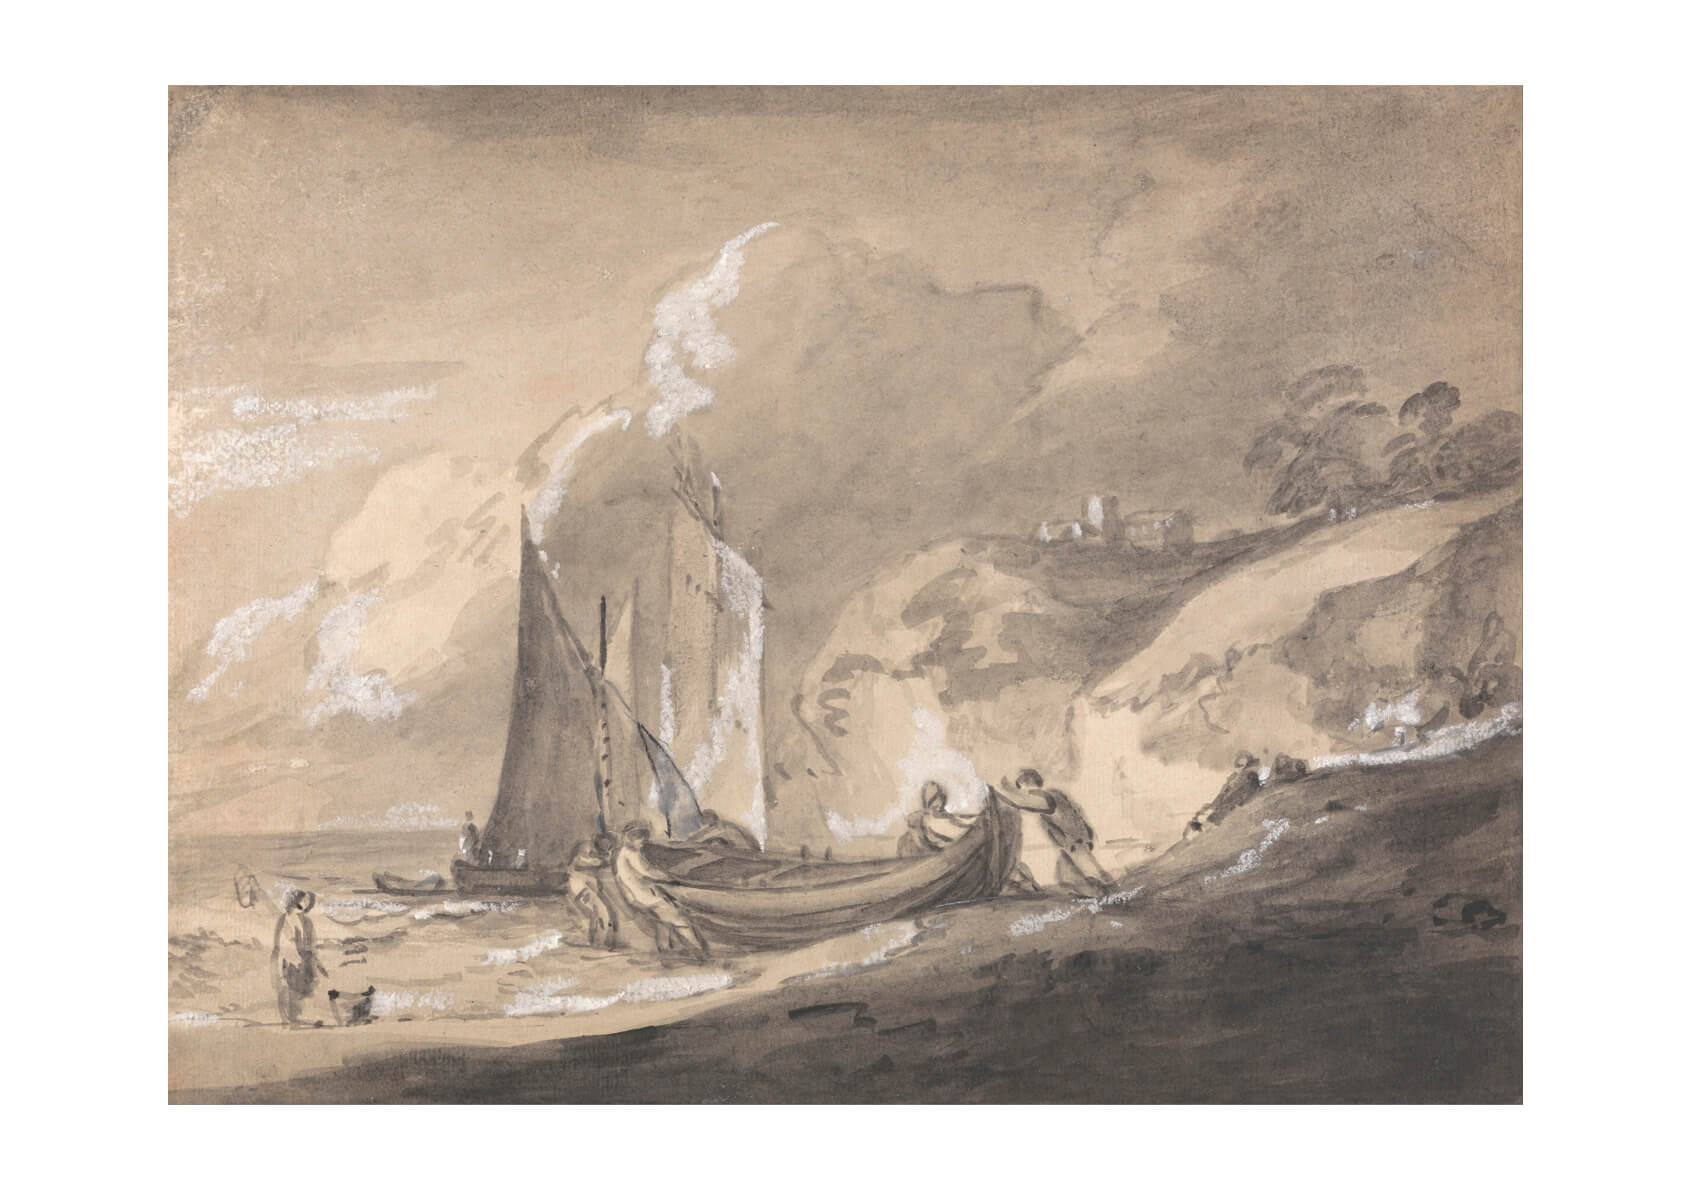 Thomas Gainsborough - Coastal Scene with Figures and Boats